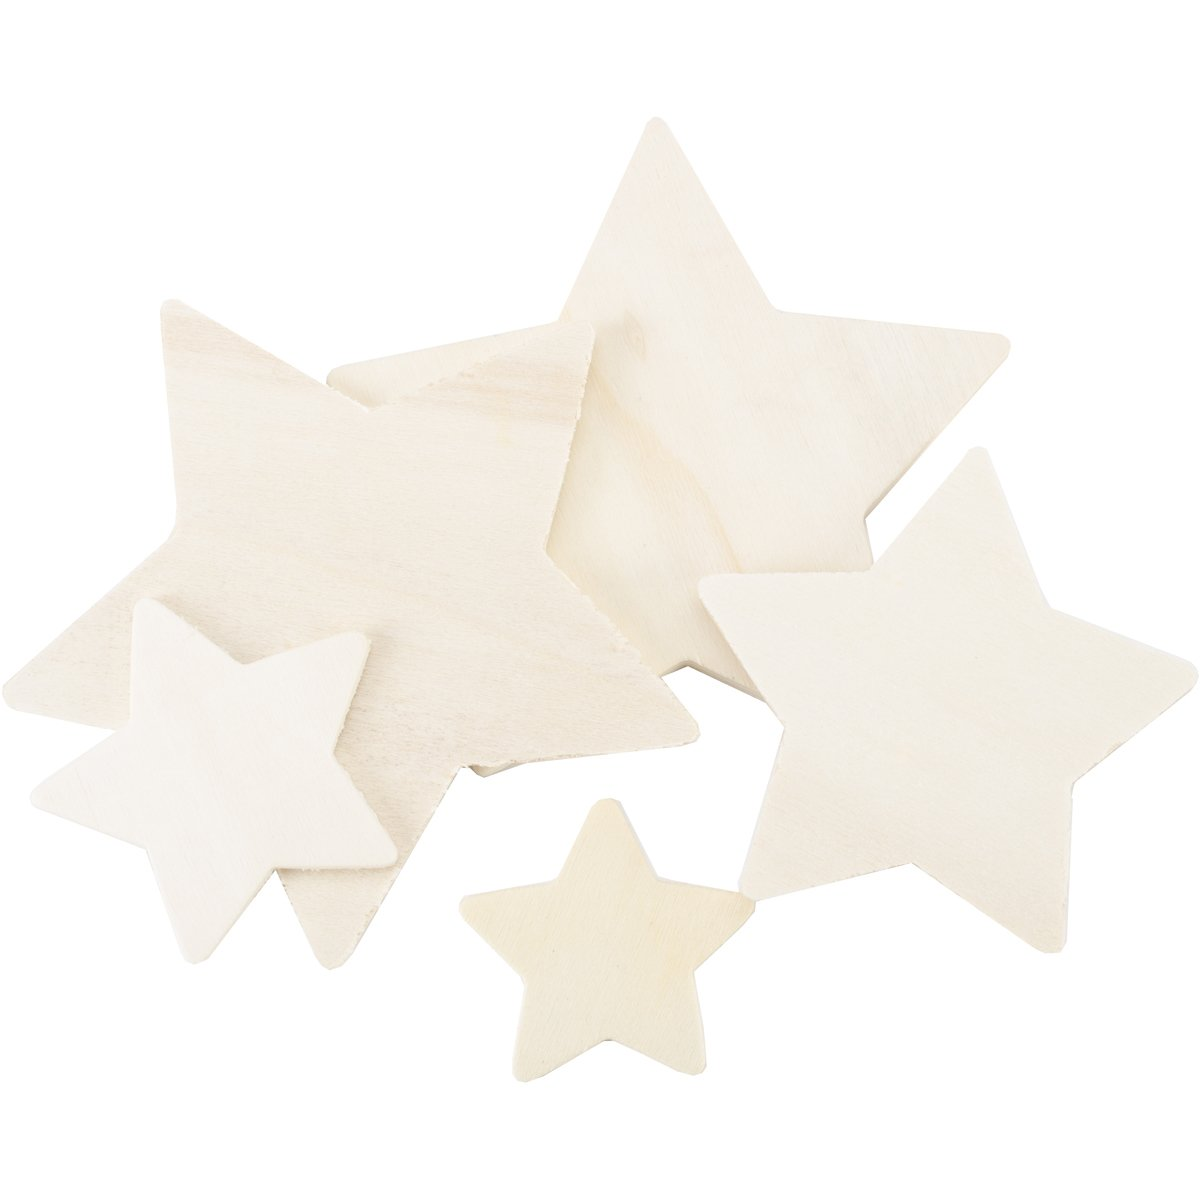 Darice Wood Cutout Star Assorted Styles ,1 to 4 inches each 9125-01